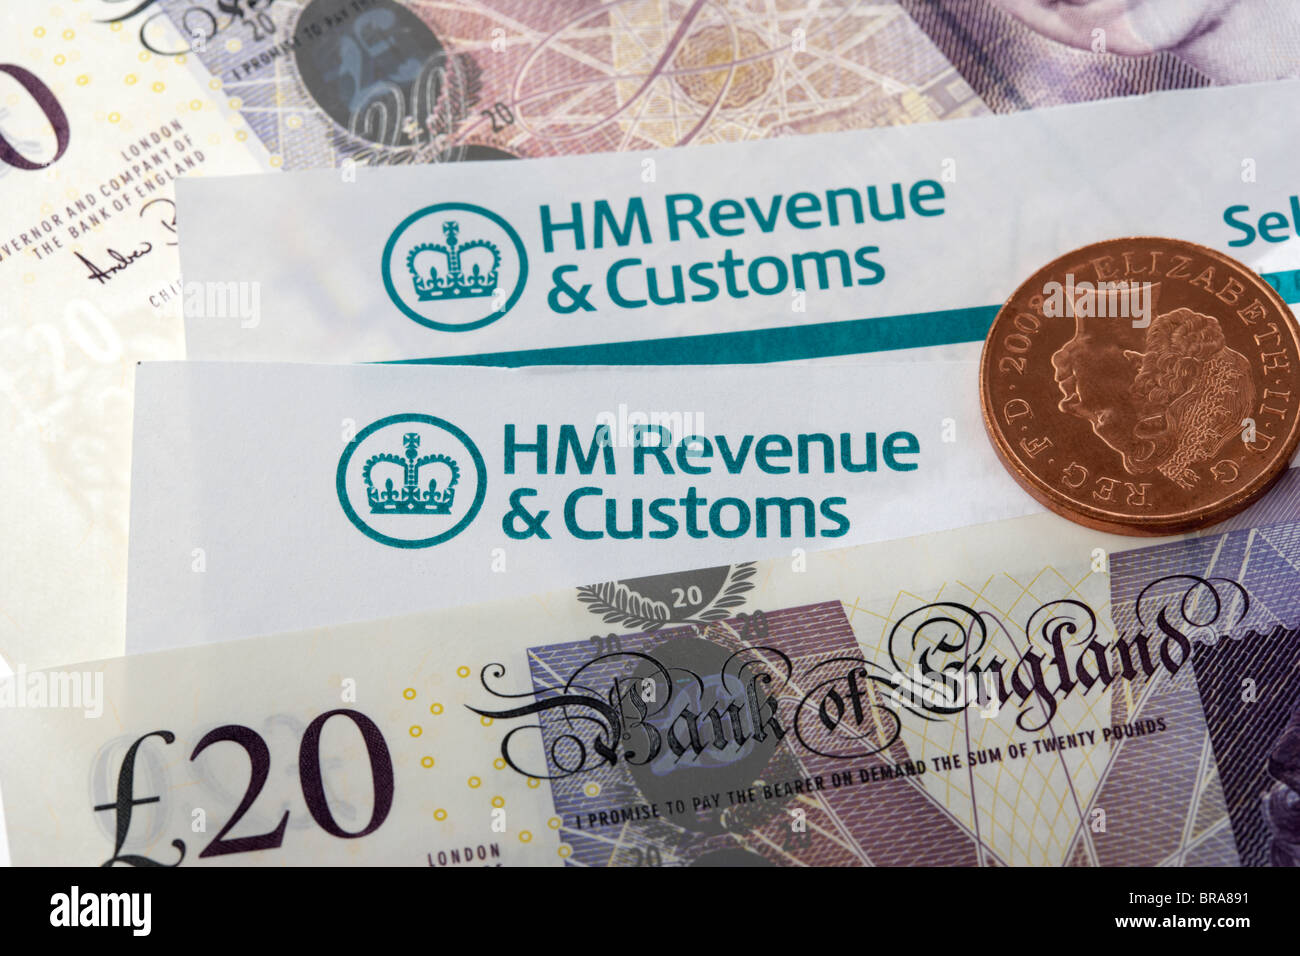 Hmrc Tax Return Letters With Logos And Cash Stock Photo Royalty